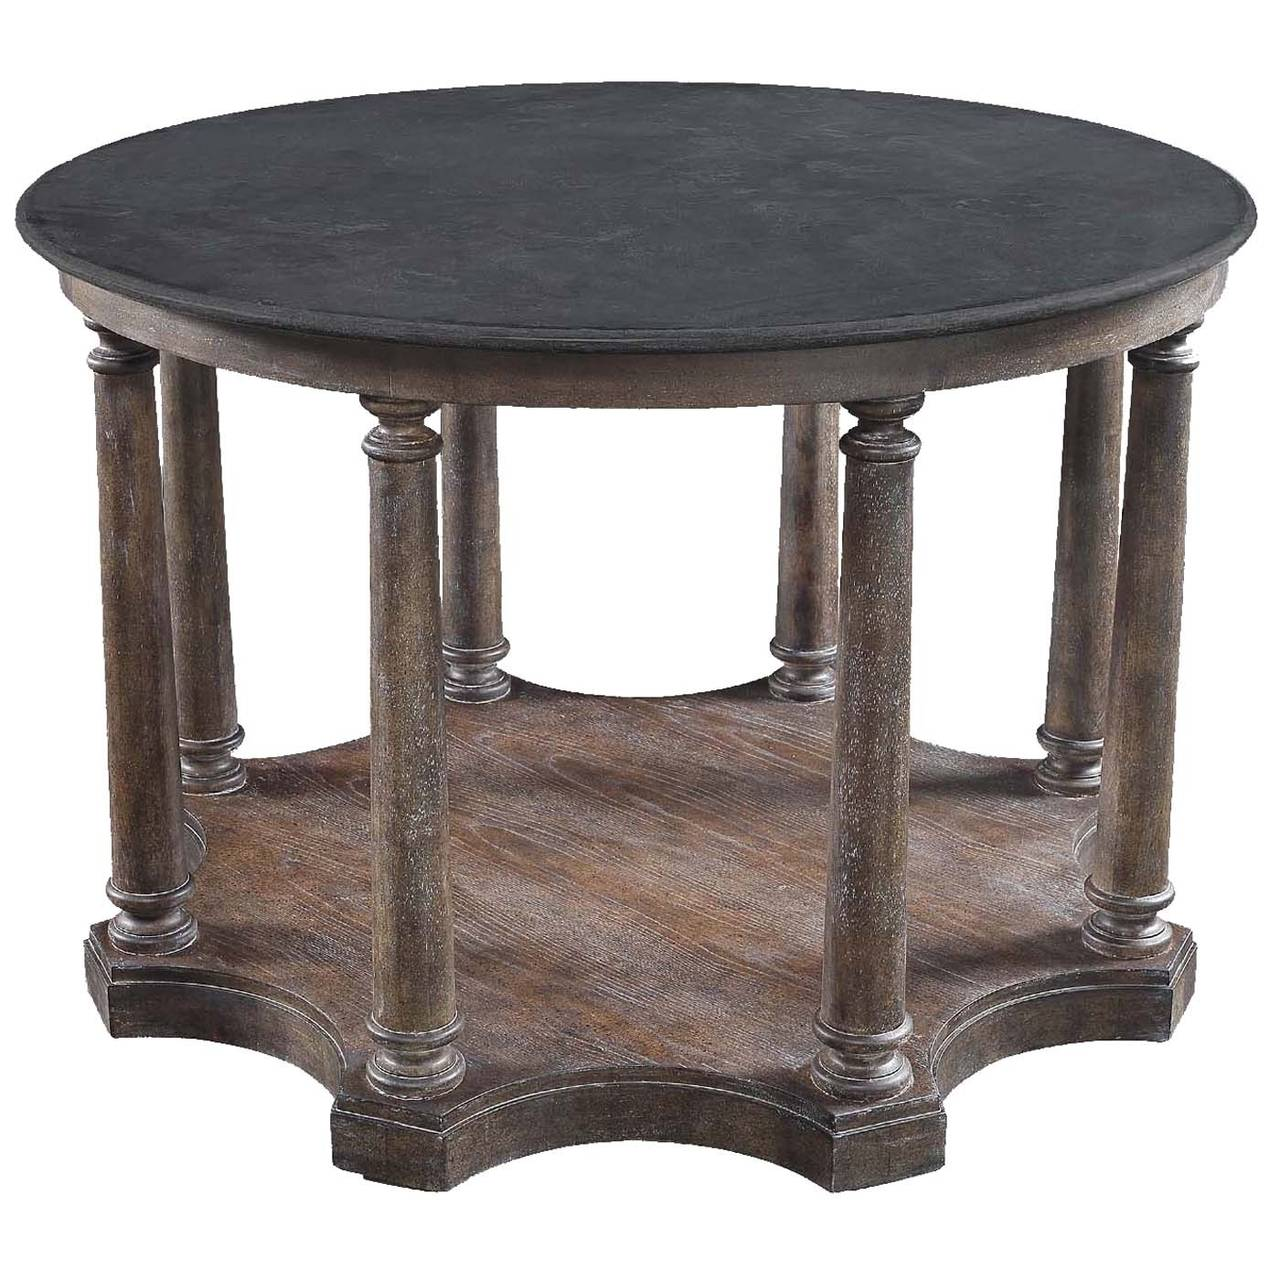 Column centre elmwood table at 1stdibs for Table column